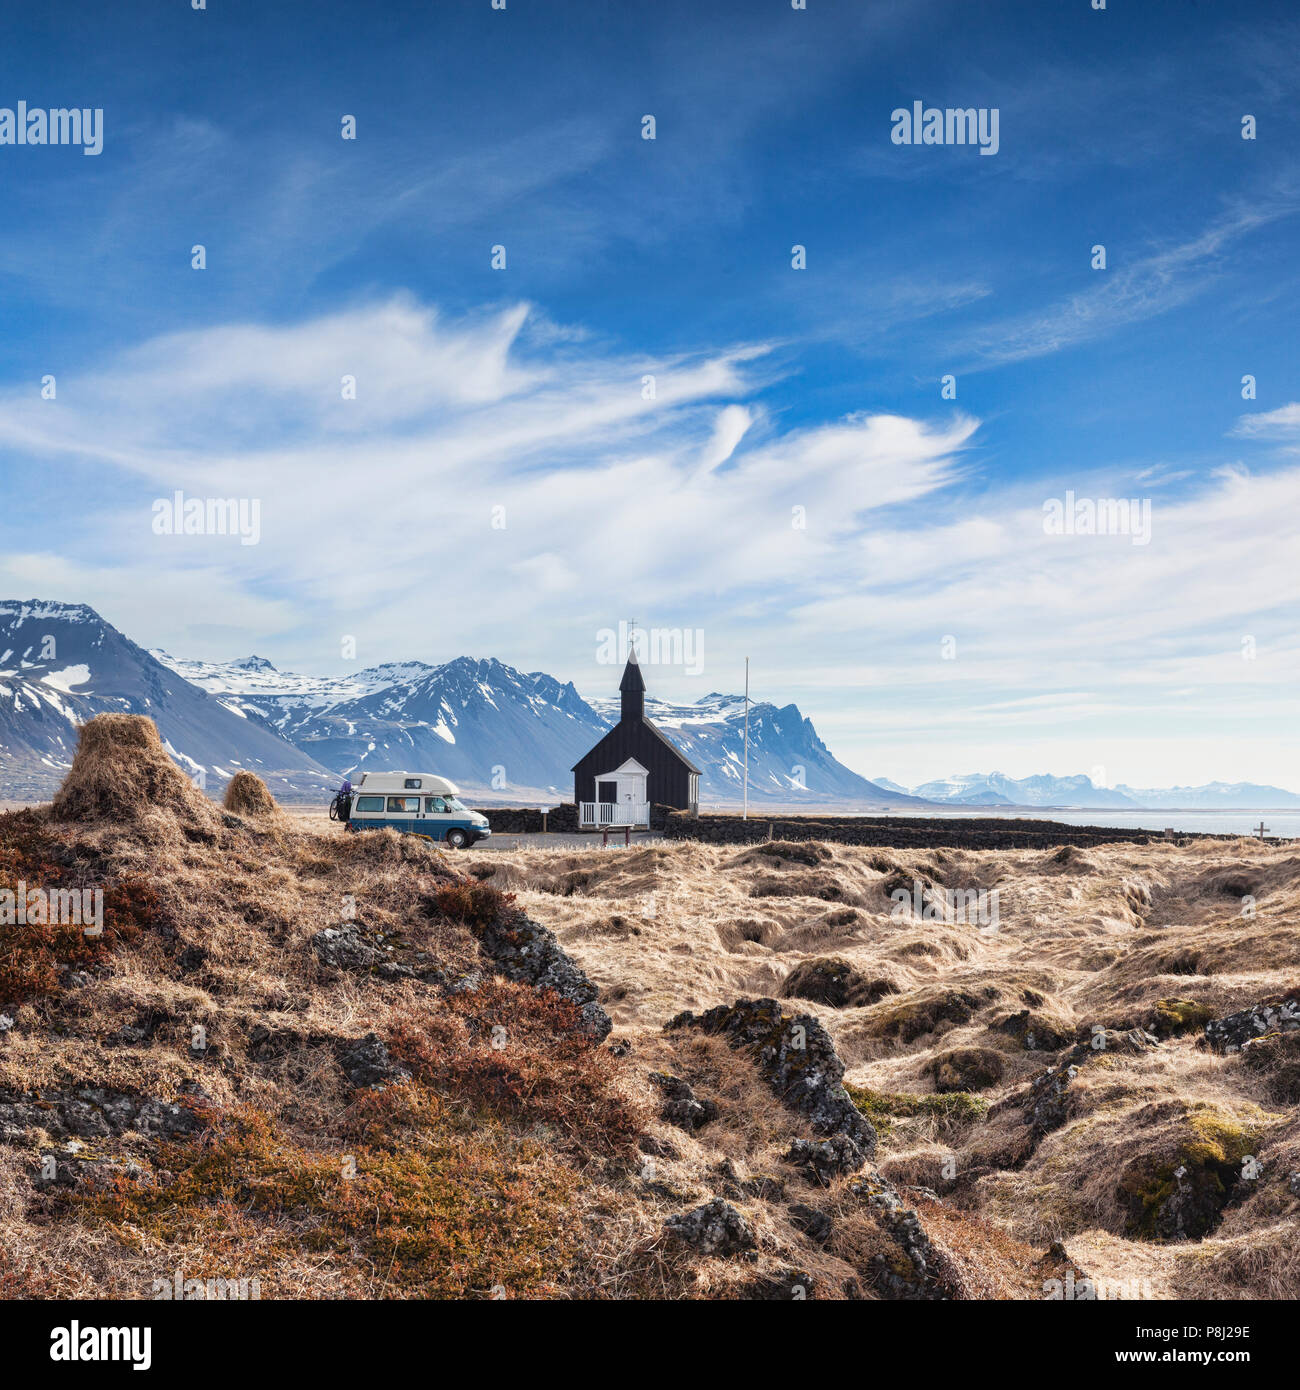 16 April 2018: Budir, Snaefellsnes Peninsula, West Iceland - The Black Church and a Volkswagen campervan with bikes on the back, with moss covered... - Stock Image